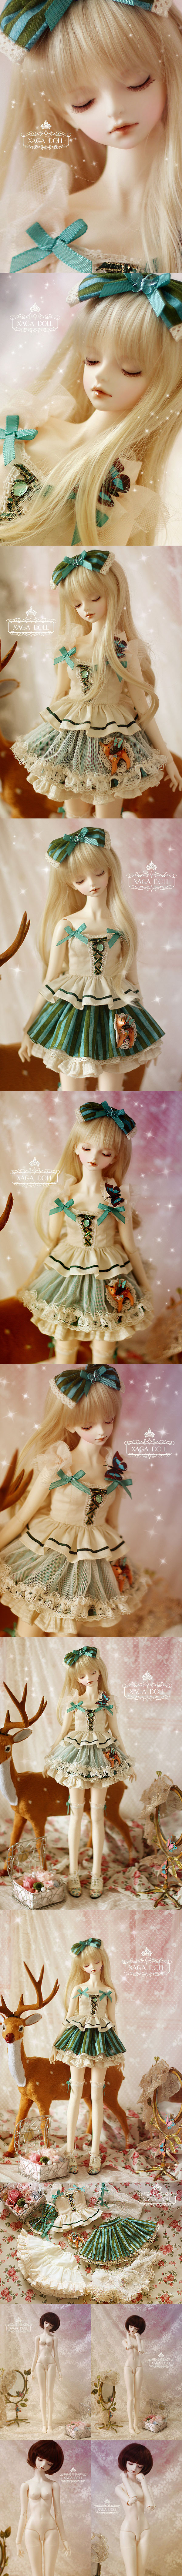 BJD Clear-SP 59cm Girl Ball-Jointed Doll